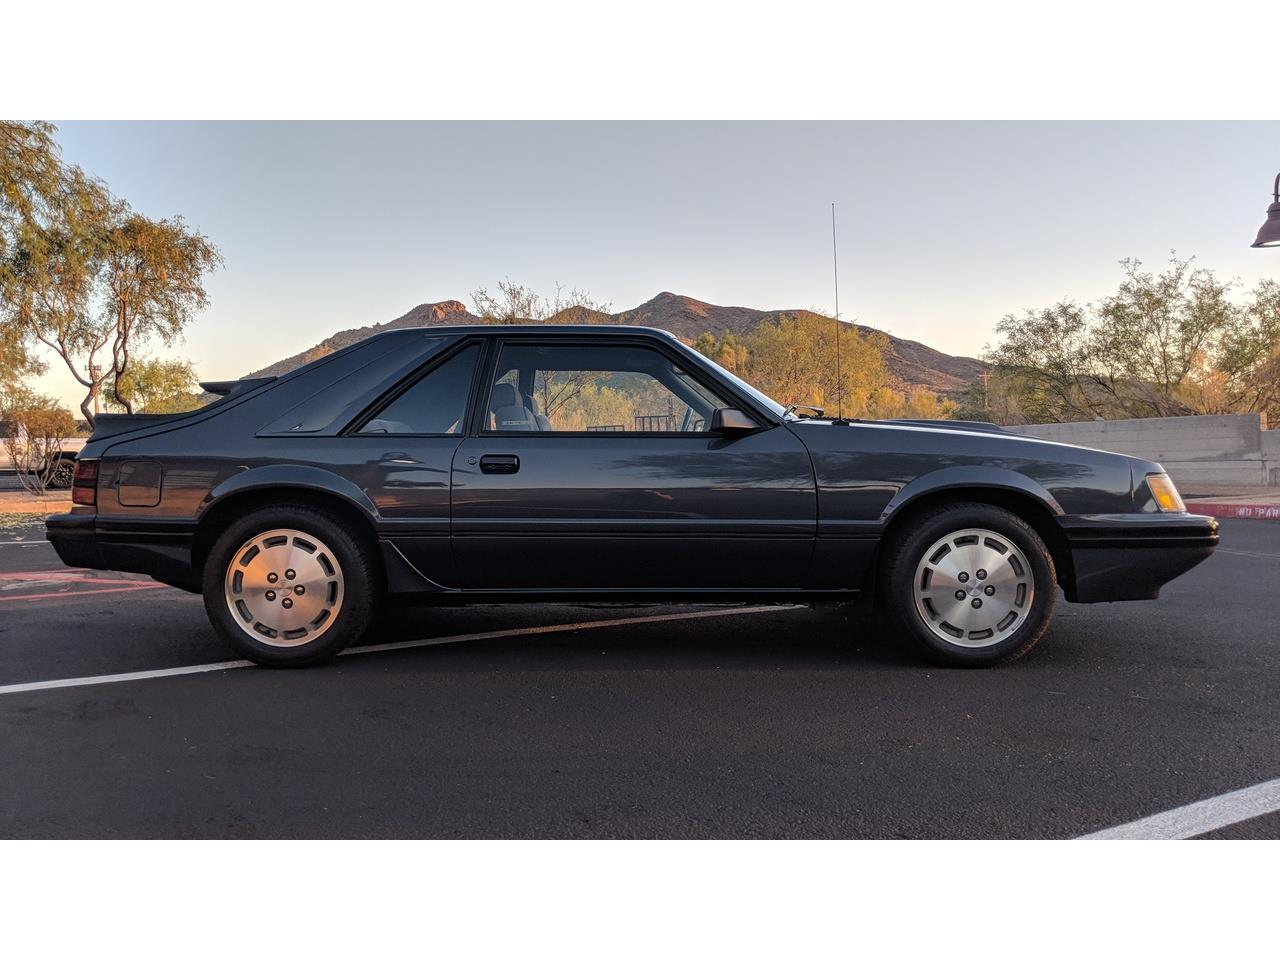 Large Picture of 1984 Ford Mustang SVO located in North Phoenix Arizona - $15,800.00 Offered by a Private Seller - MXZ6